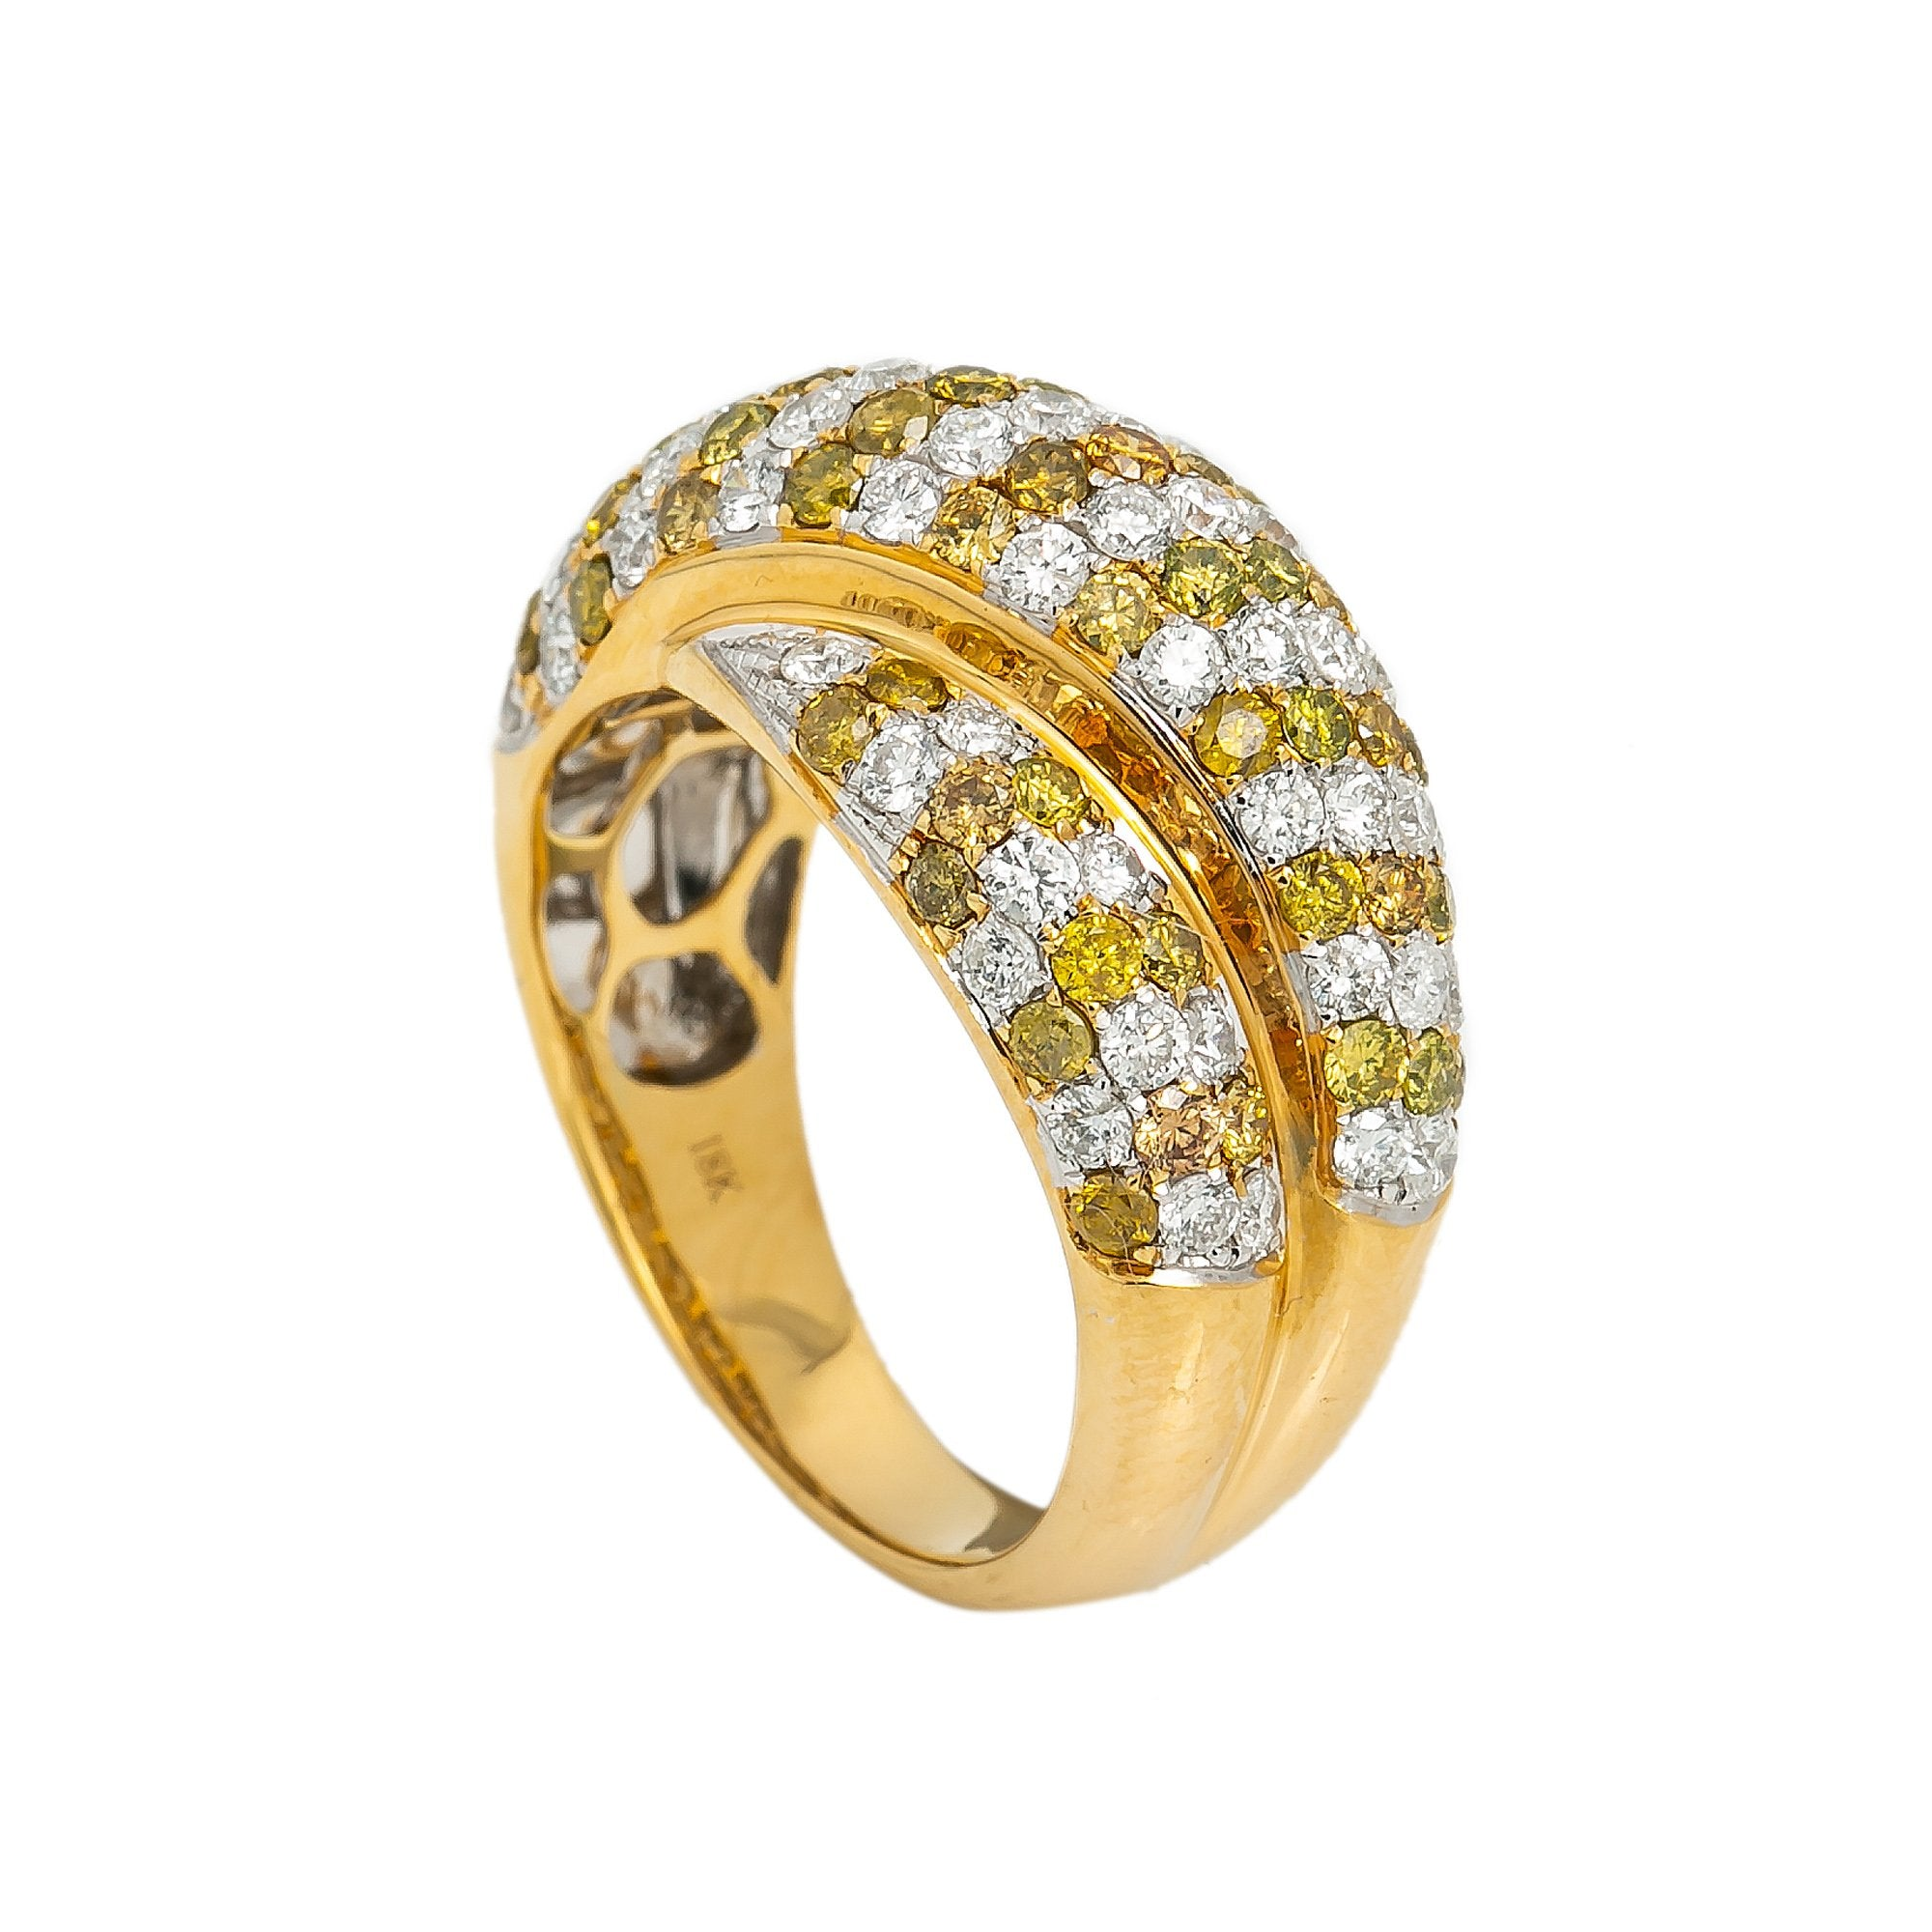 LADIES 18K YELLOW GOLD HAND RING WITH 2.5 CT DIAMONDS